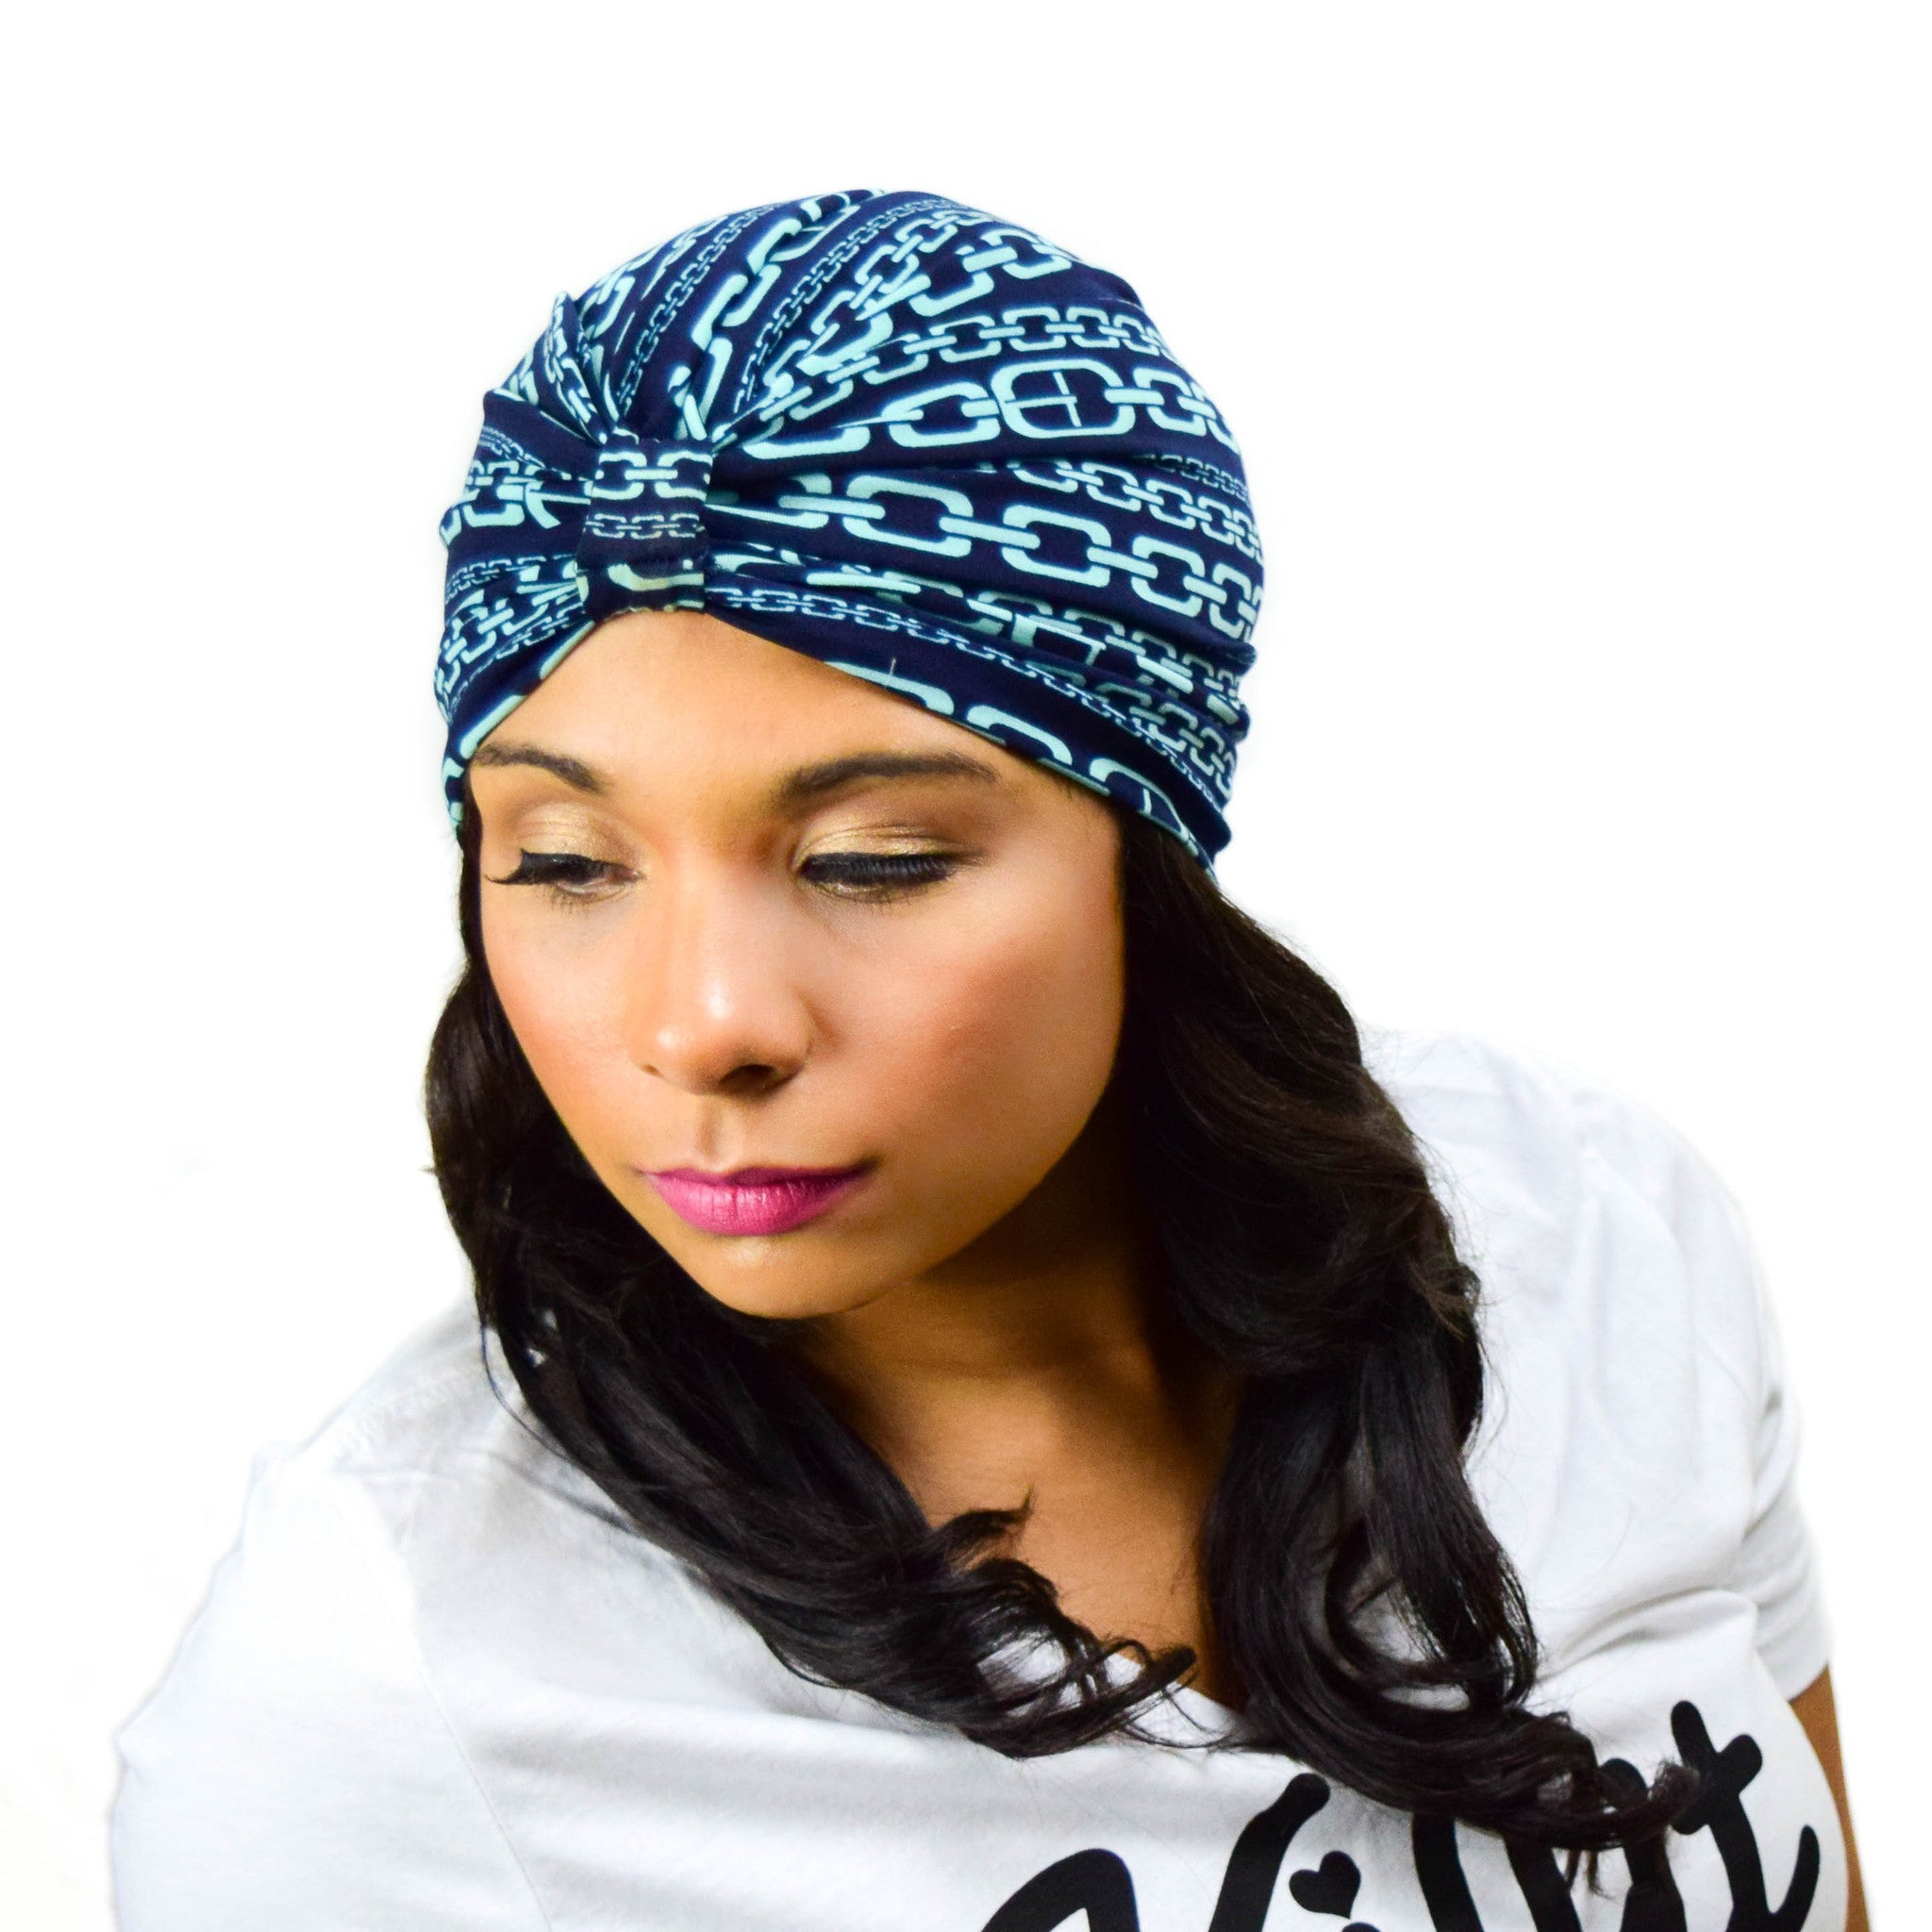 Chainlink Head Wrap - LoveEmme, Product_Type, Product_Vendor